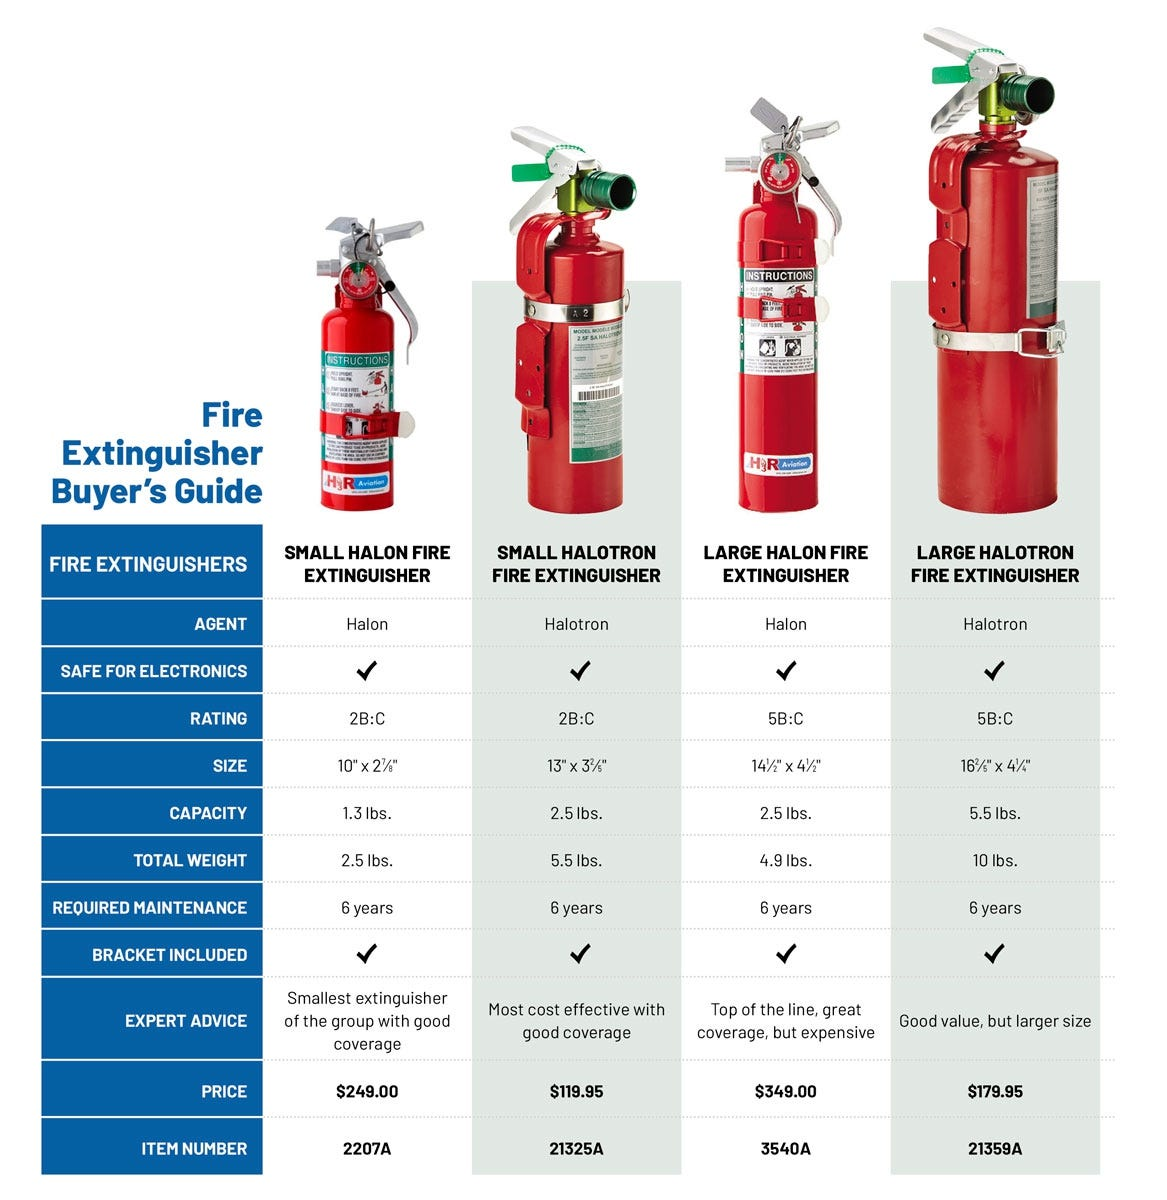 Aviation fire extinguisher buyer's guide